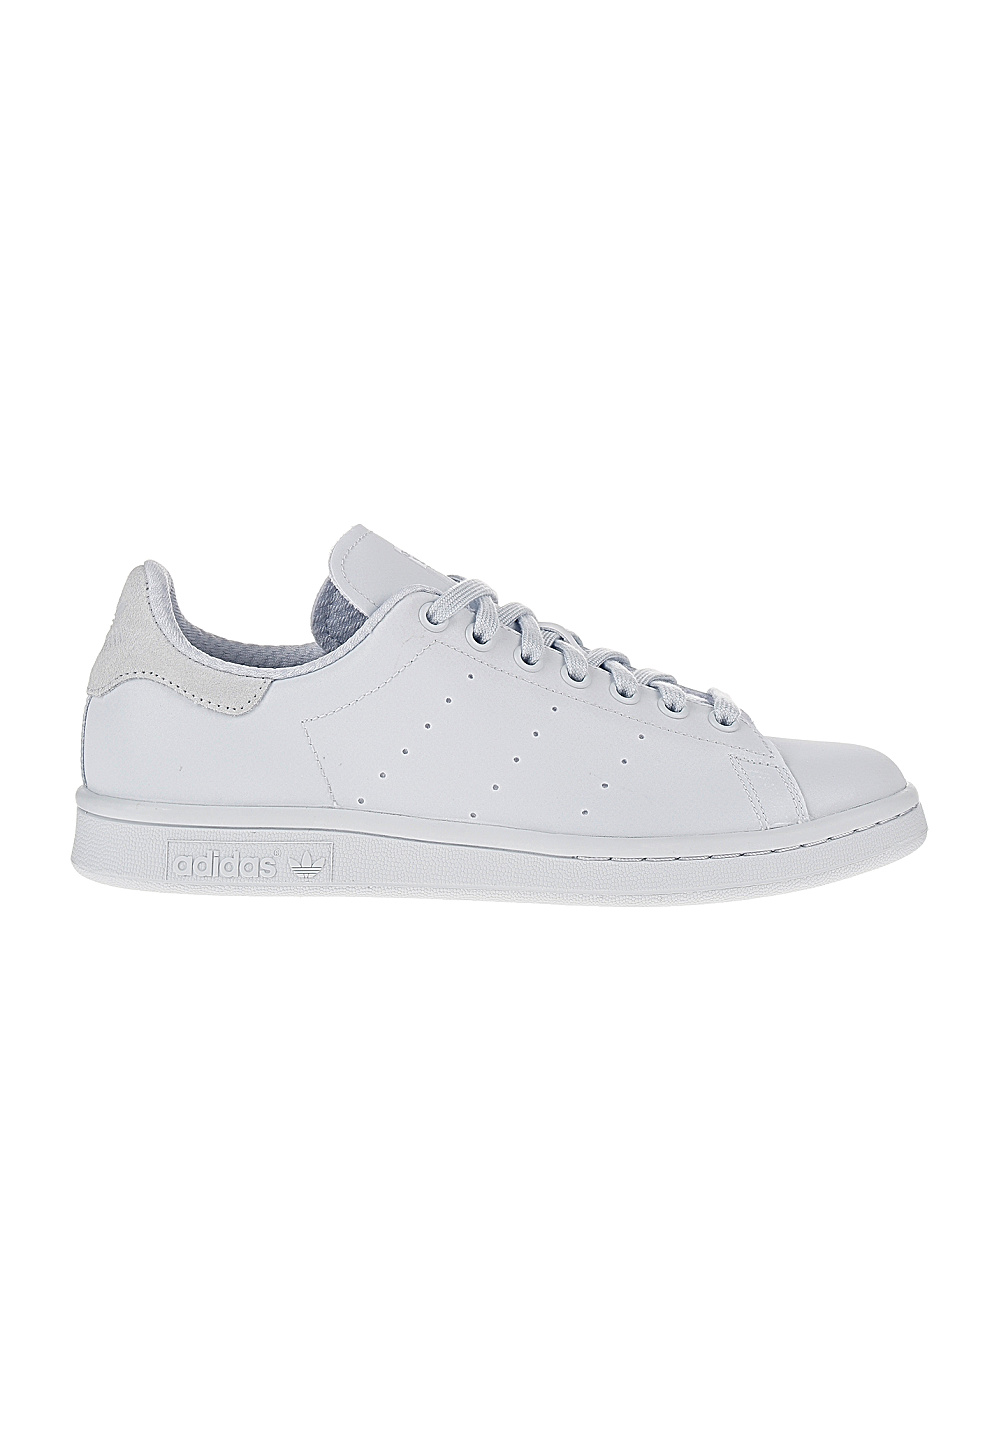 Stan Smith Dames Grijs